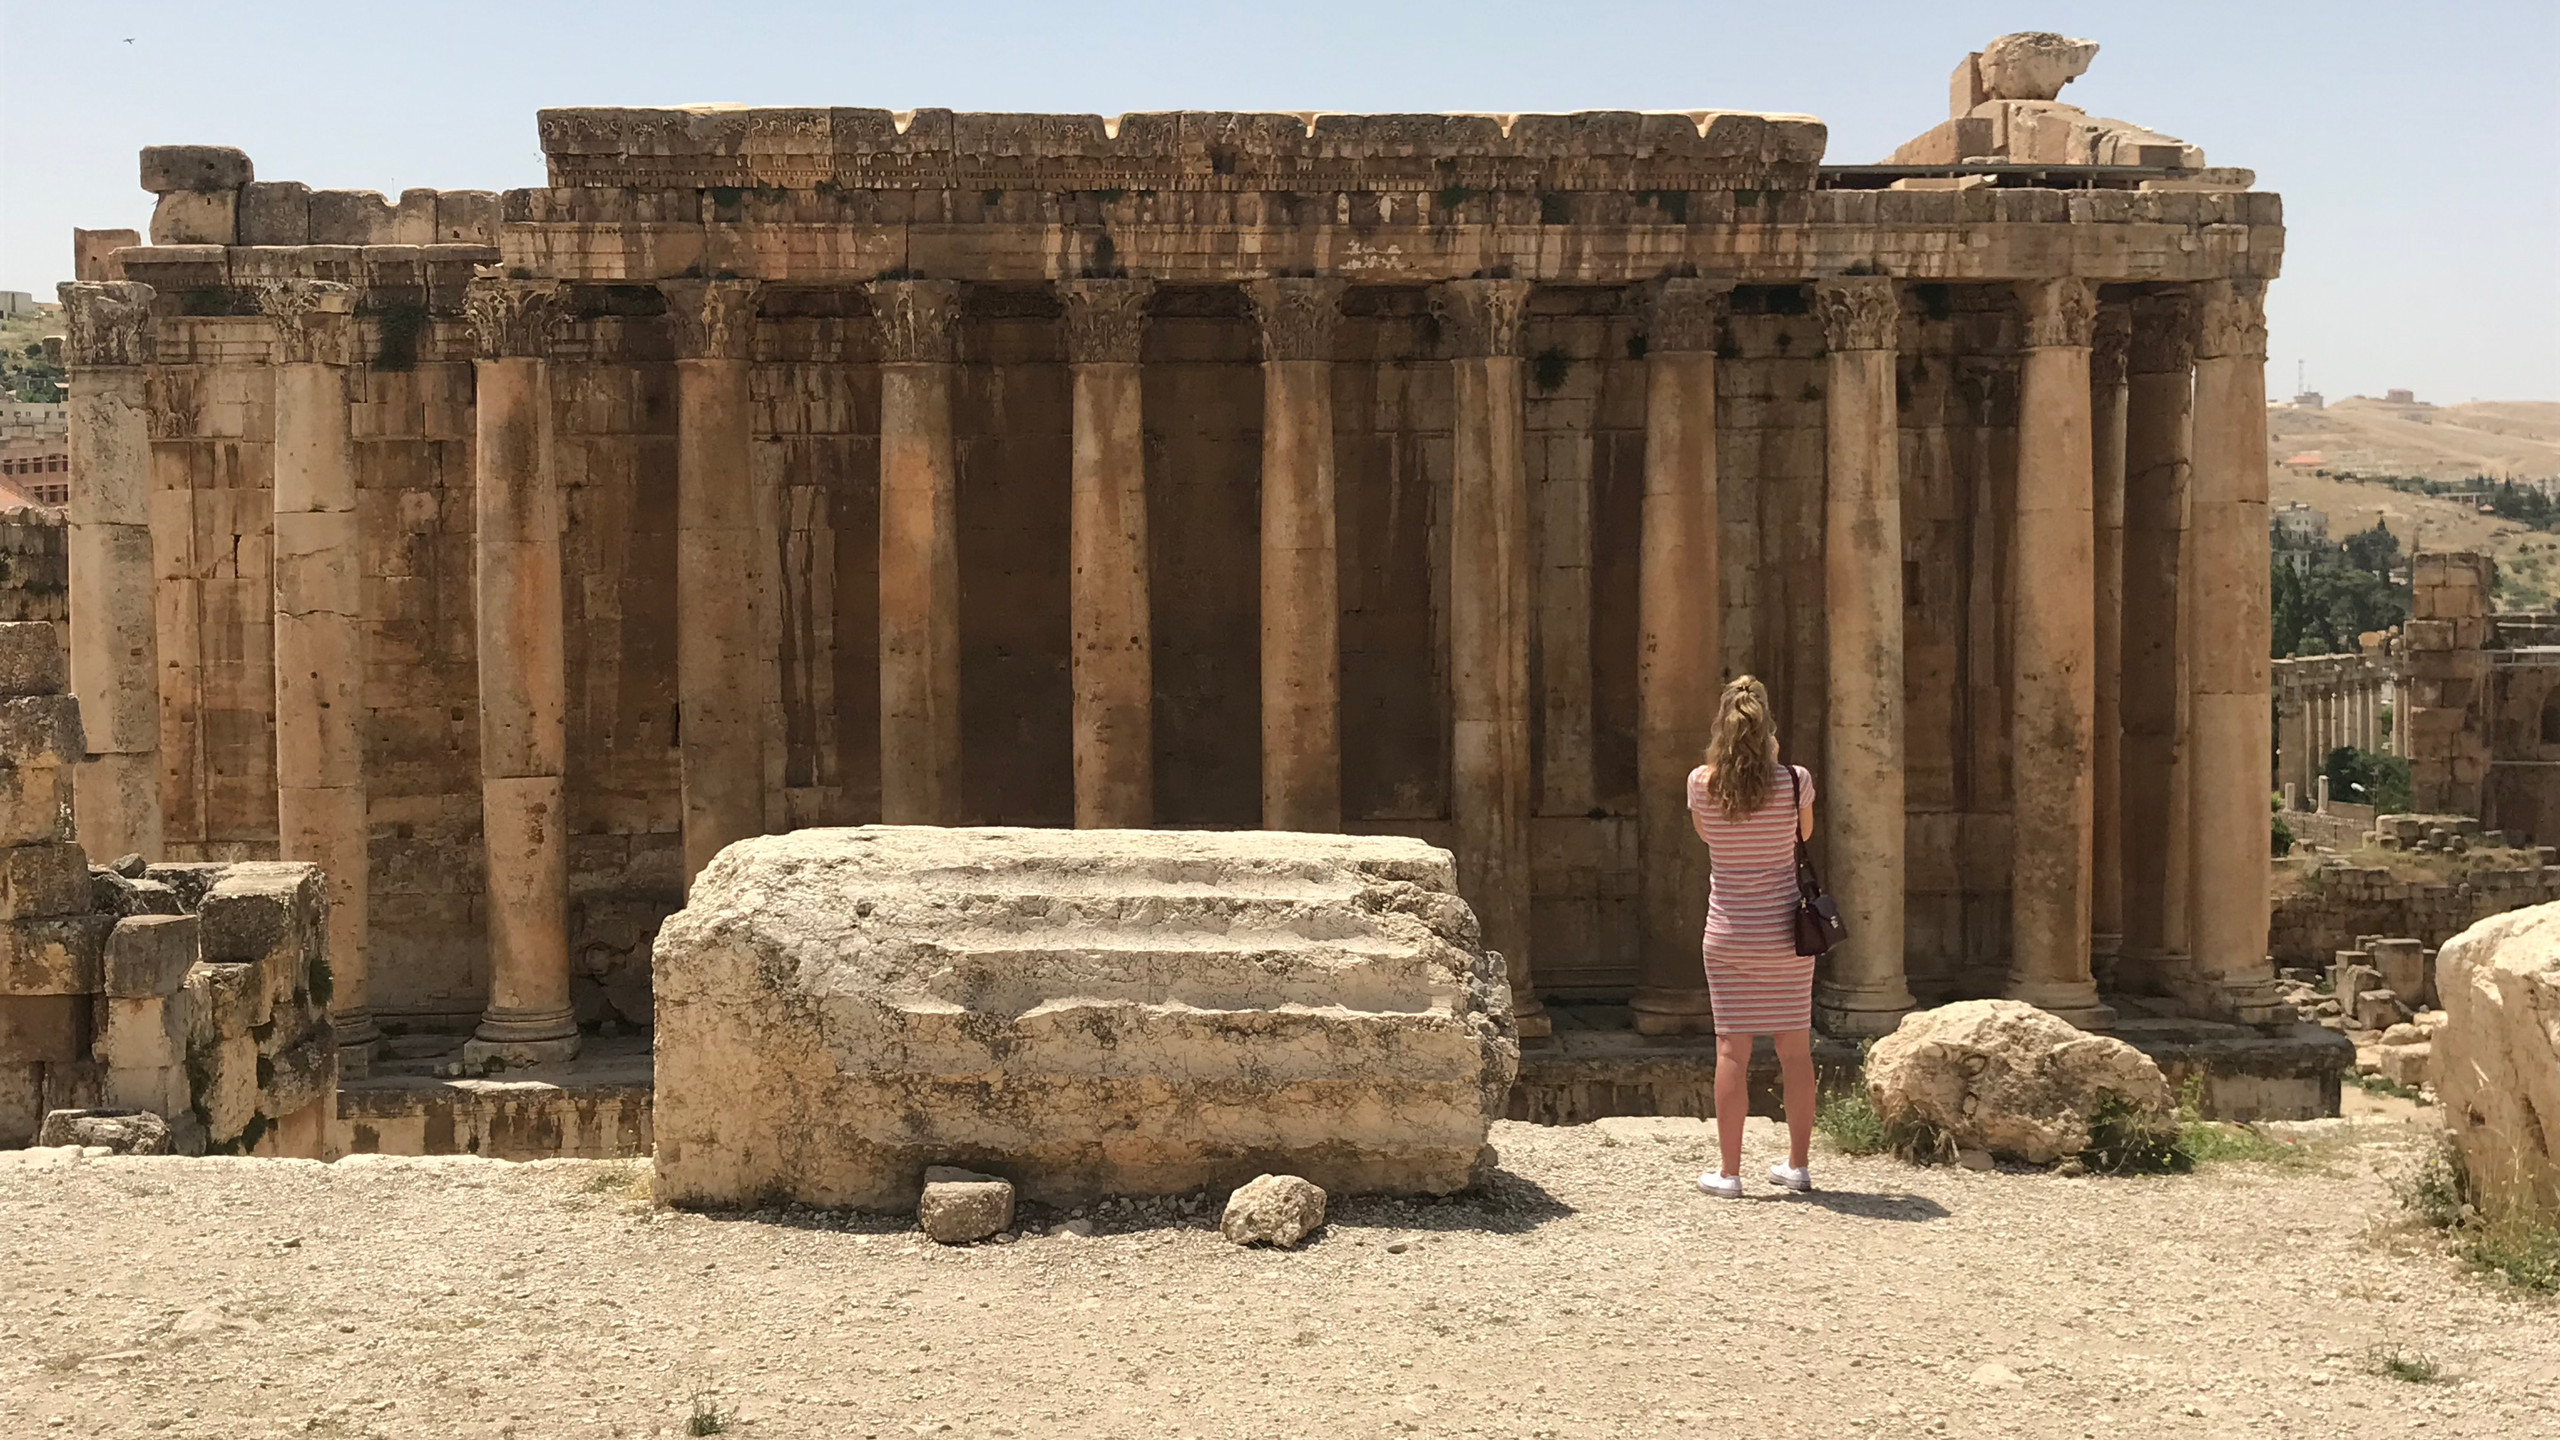 A view to the Temple of Bacchus, Baalbek